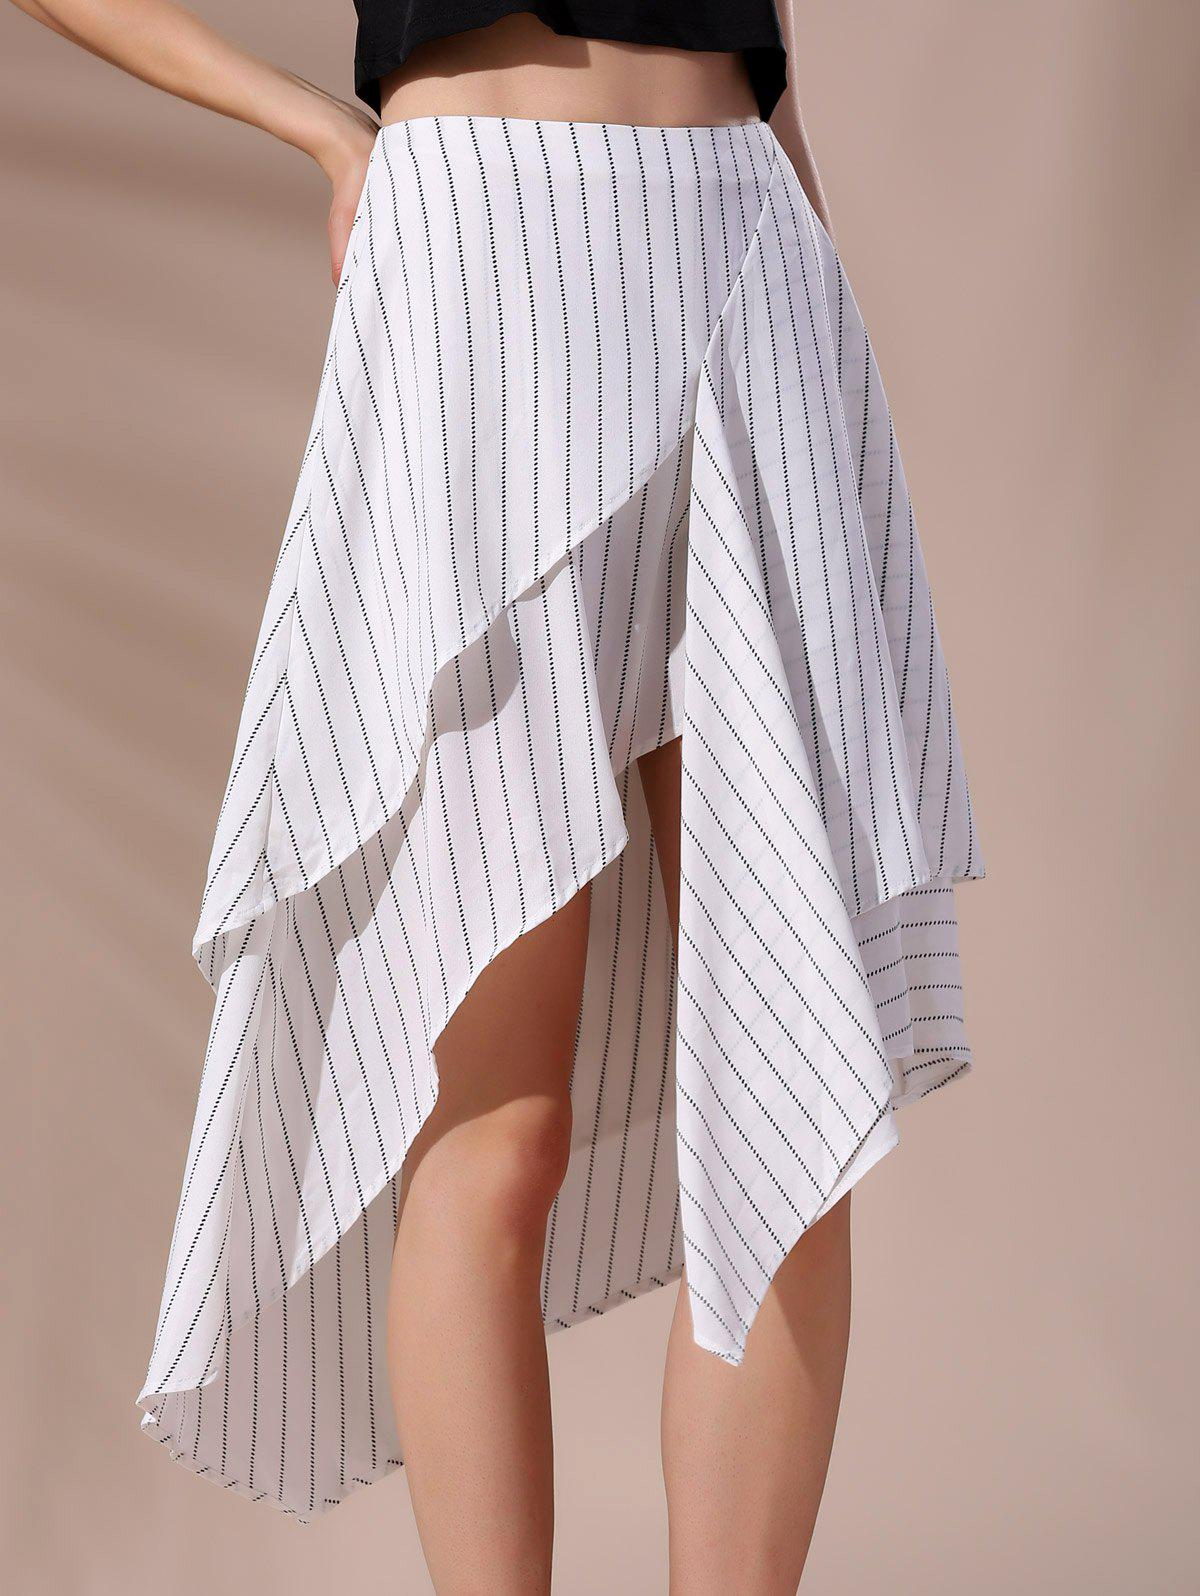 Fashionable Women's High-Waisted Pinstriped Asymmetrical Skirt - WHITE L